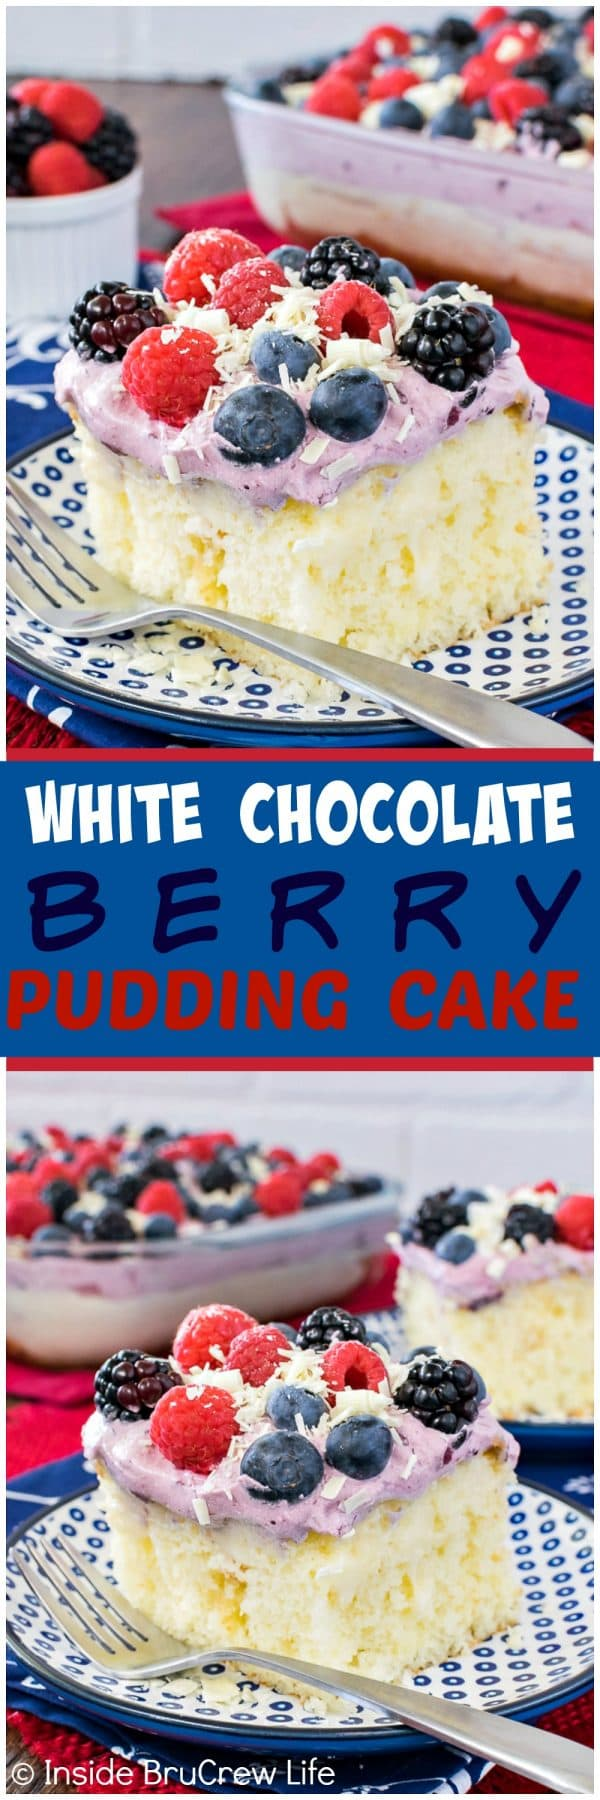 White Chocolate Berry Pudding Cake - fresh berries, white chocolate pudding, and an easy berry topping make this easy cake perfect for summer parties and picnics! Great recipe for the 4th of July!